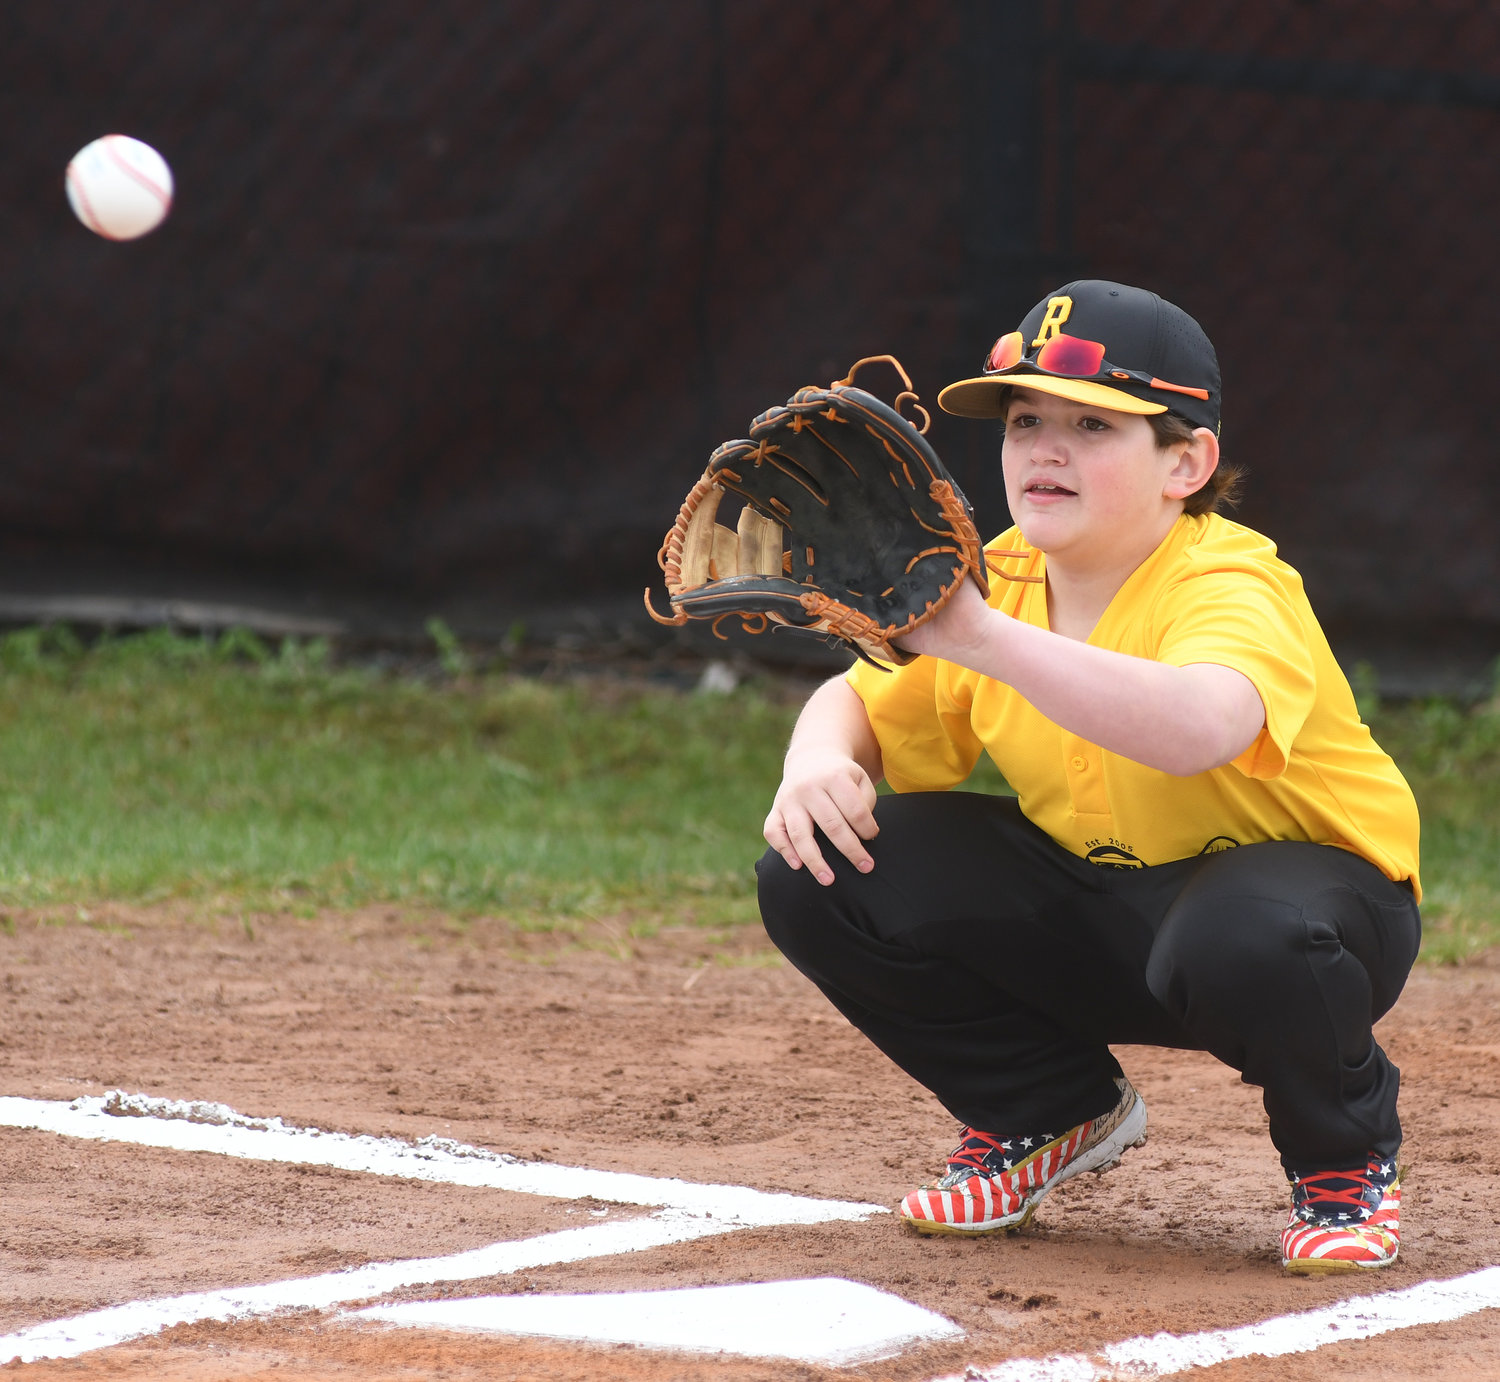 PJ Summa catches a first pitch from Steven Eychner during opening ceremonies at the Bell Road baseball fields.